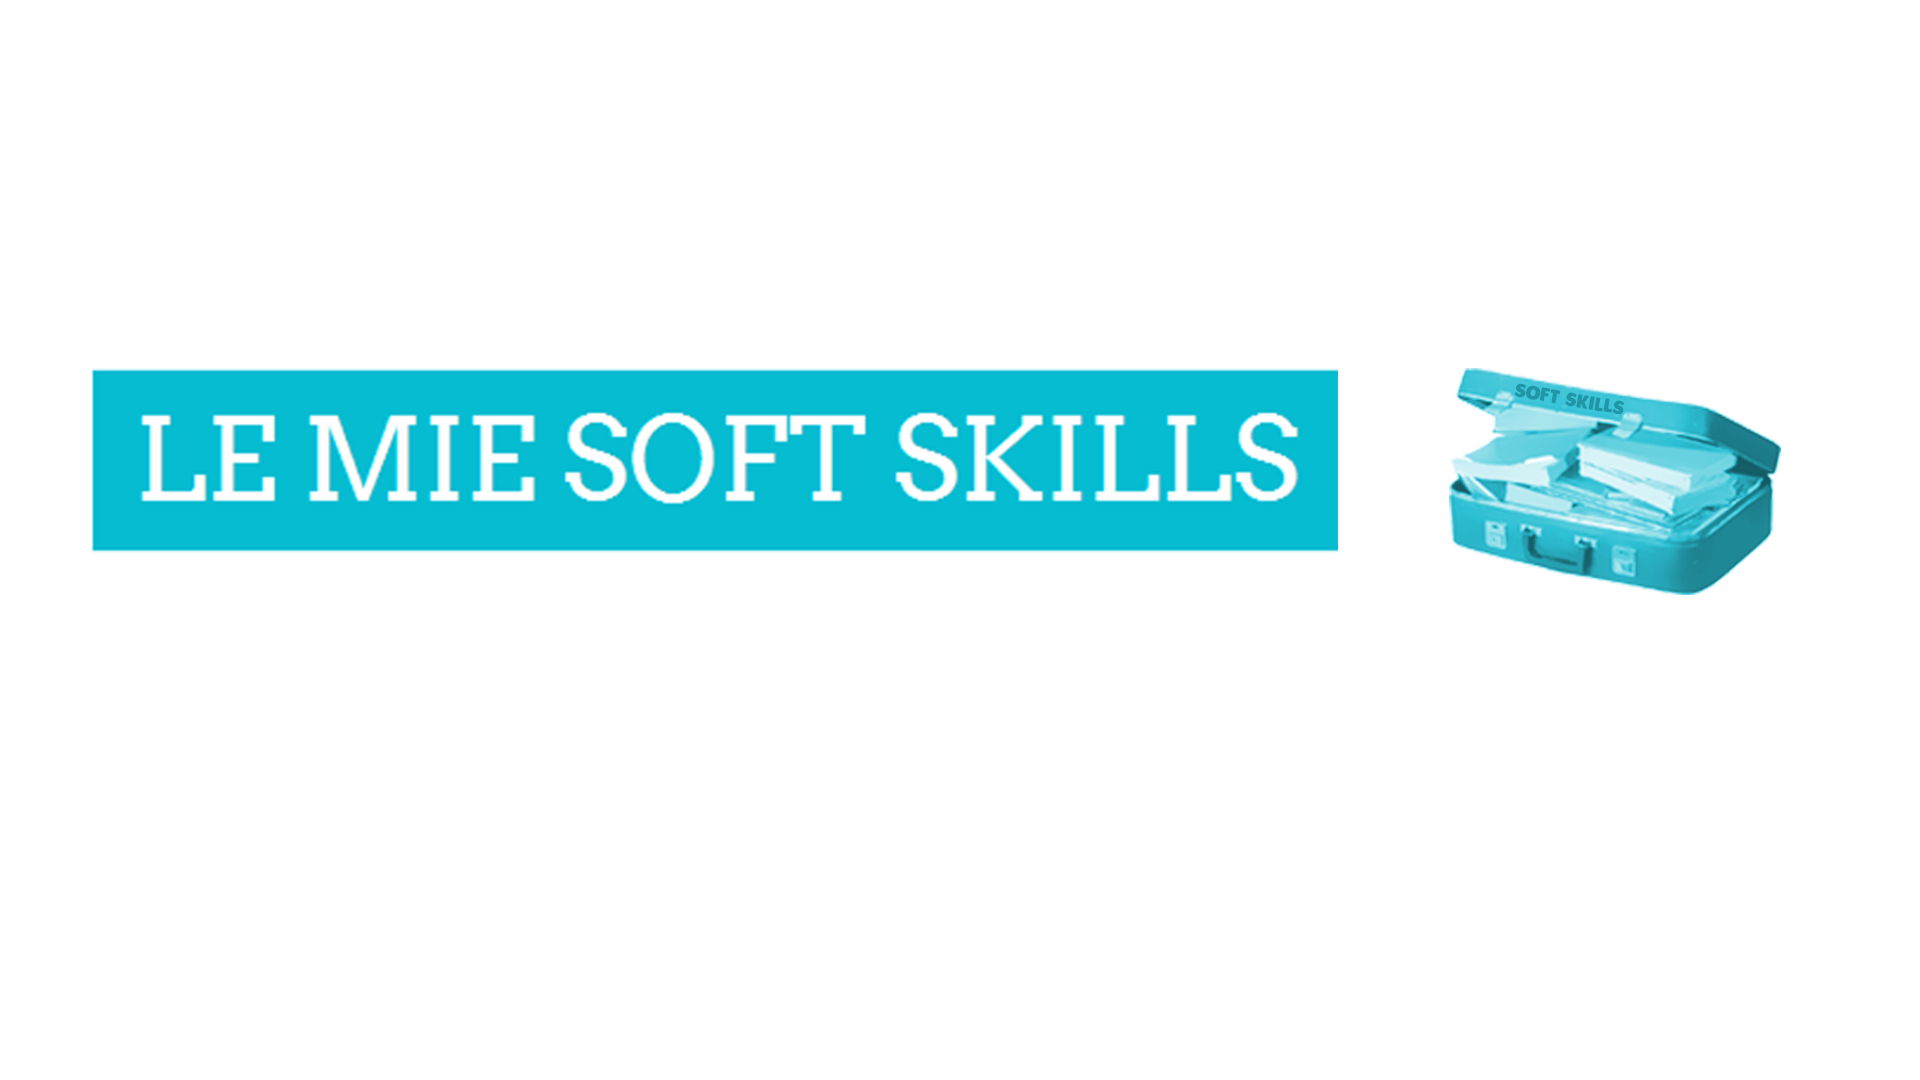 soft skills headline